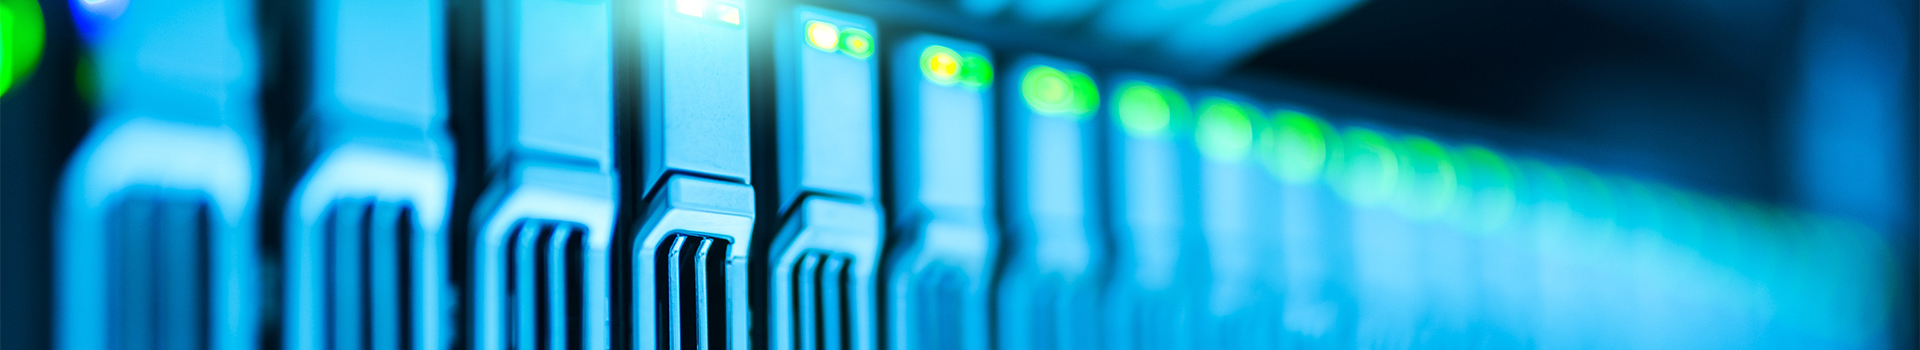 Our Solutions - Advanced Server Support